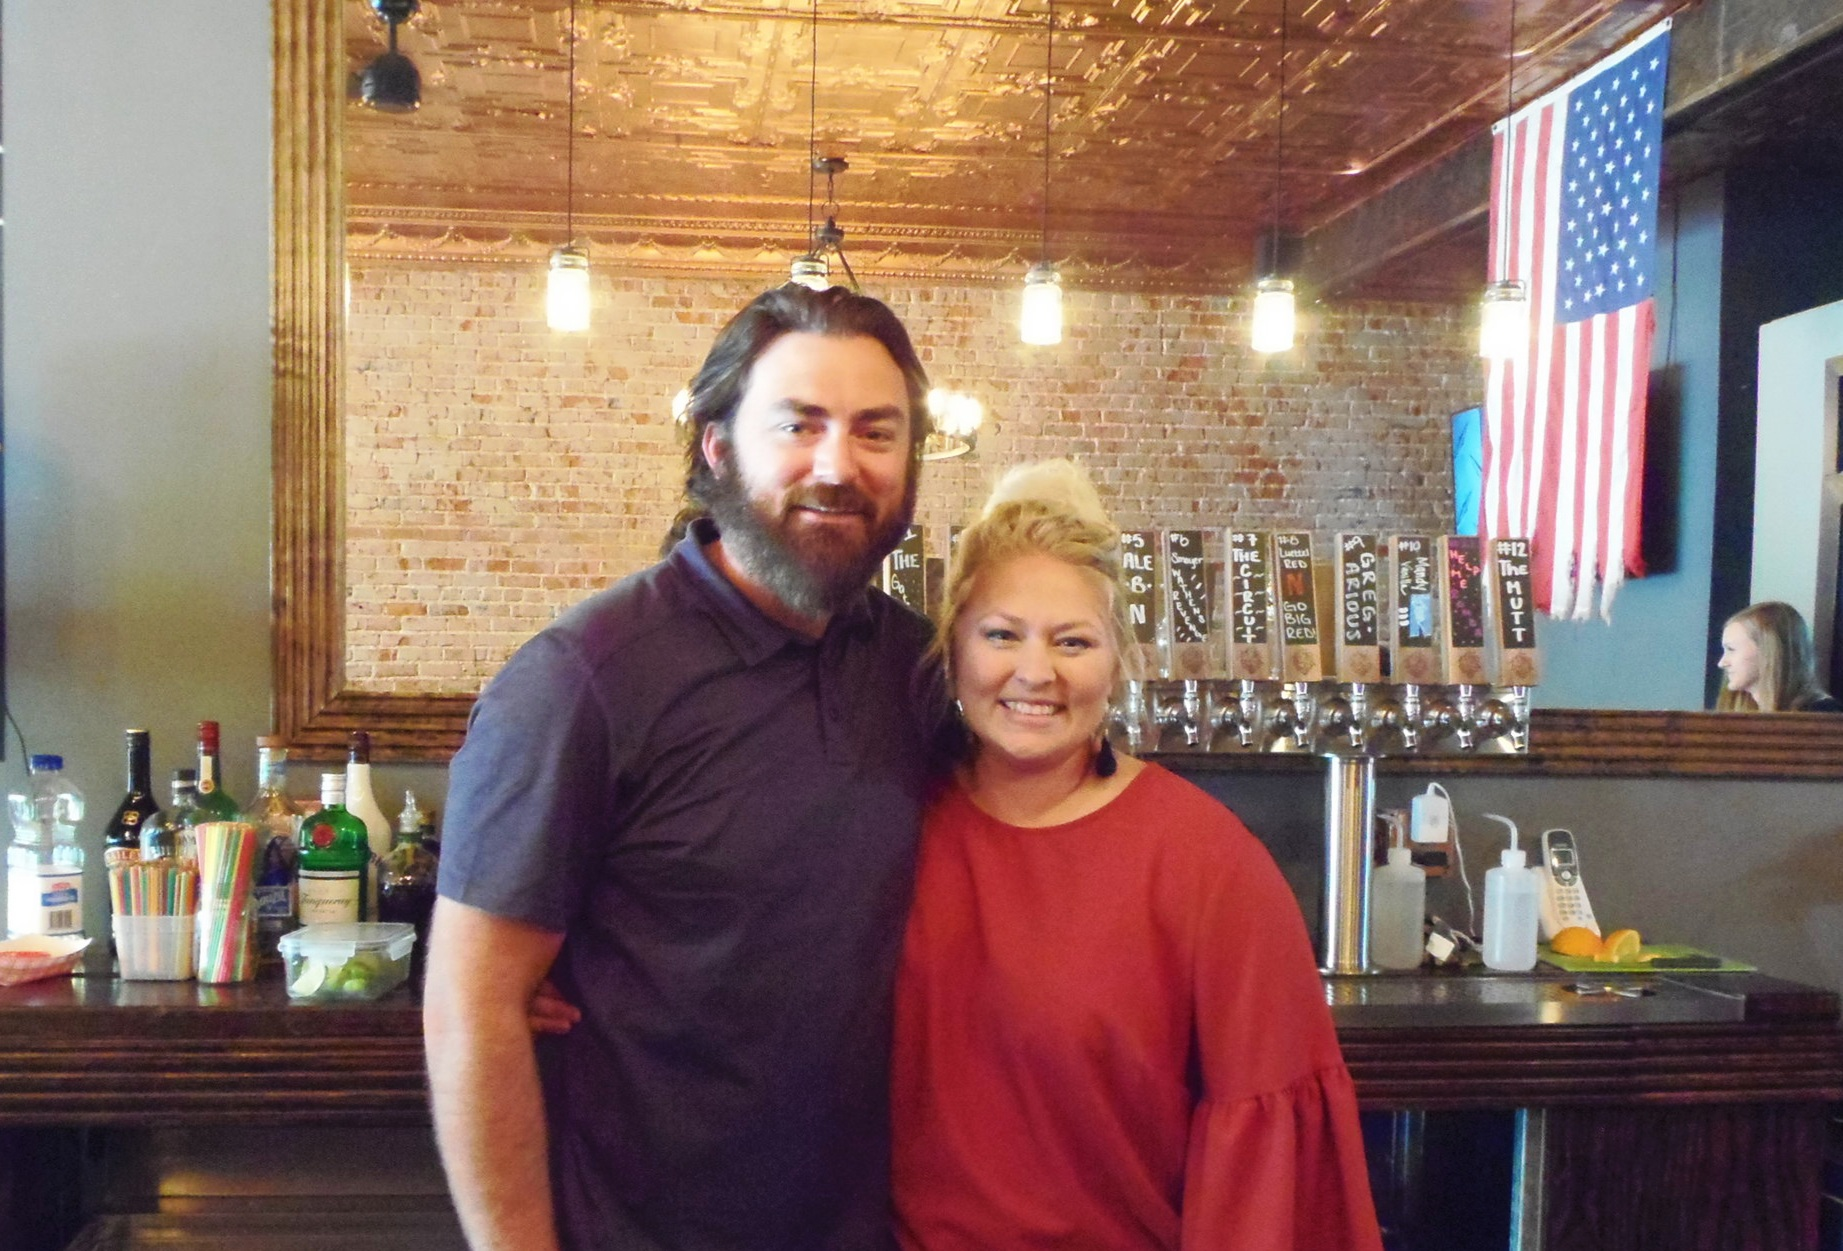 Greg and Mandy Luettel are the owners of Hwy 14 Brewing Co.